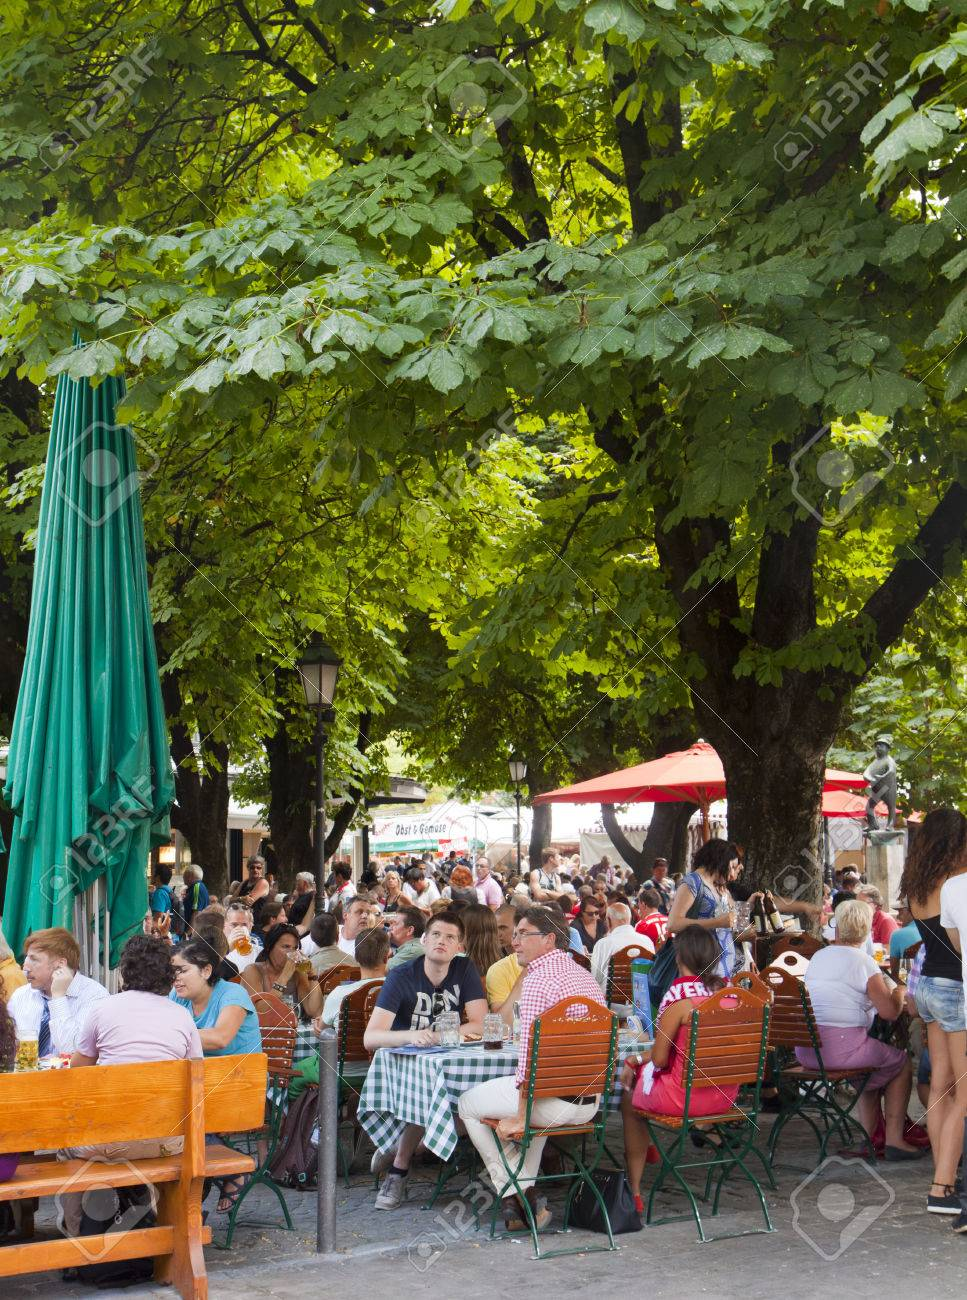 people seat and enjoy beer and food at a open air restaurant at Viktualien Markt in Munich Stock Photo - 35784034